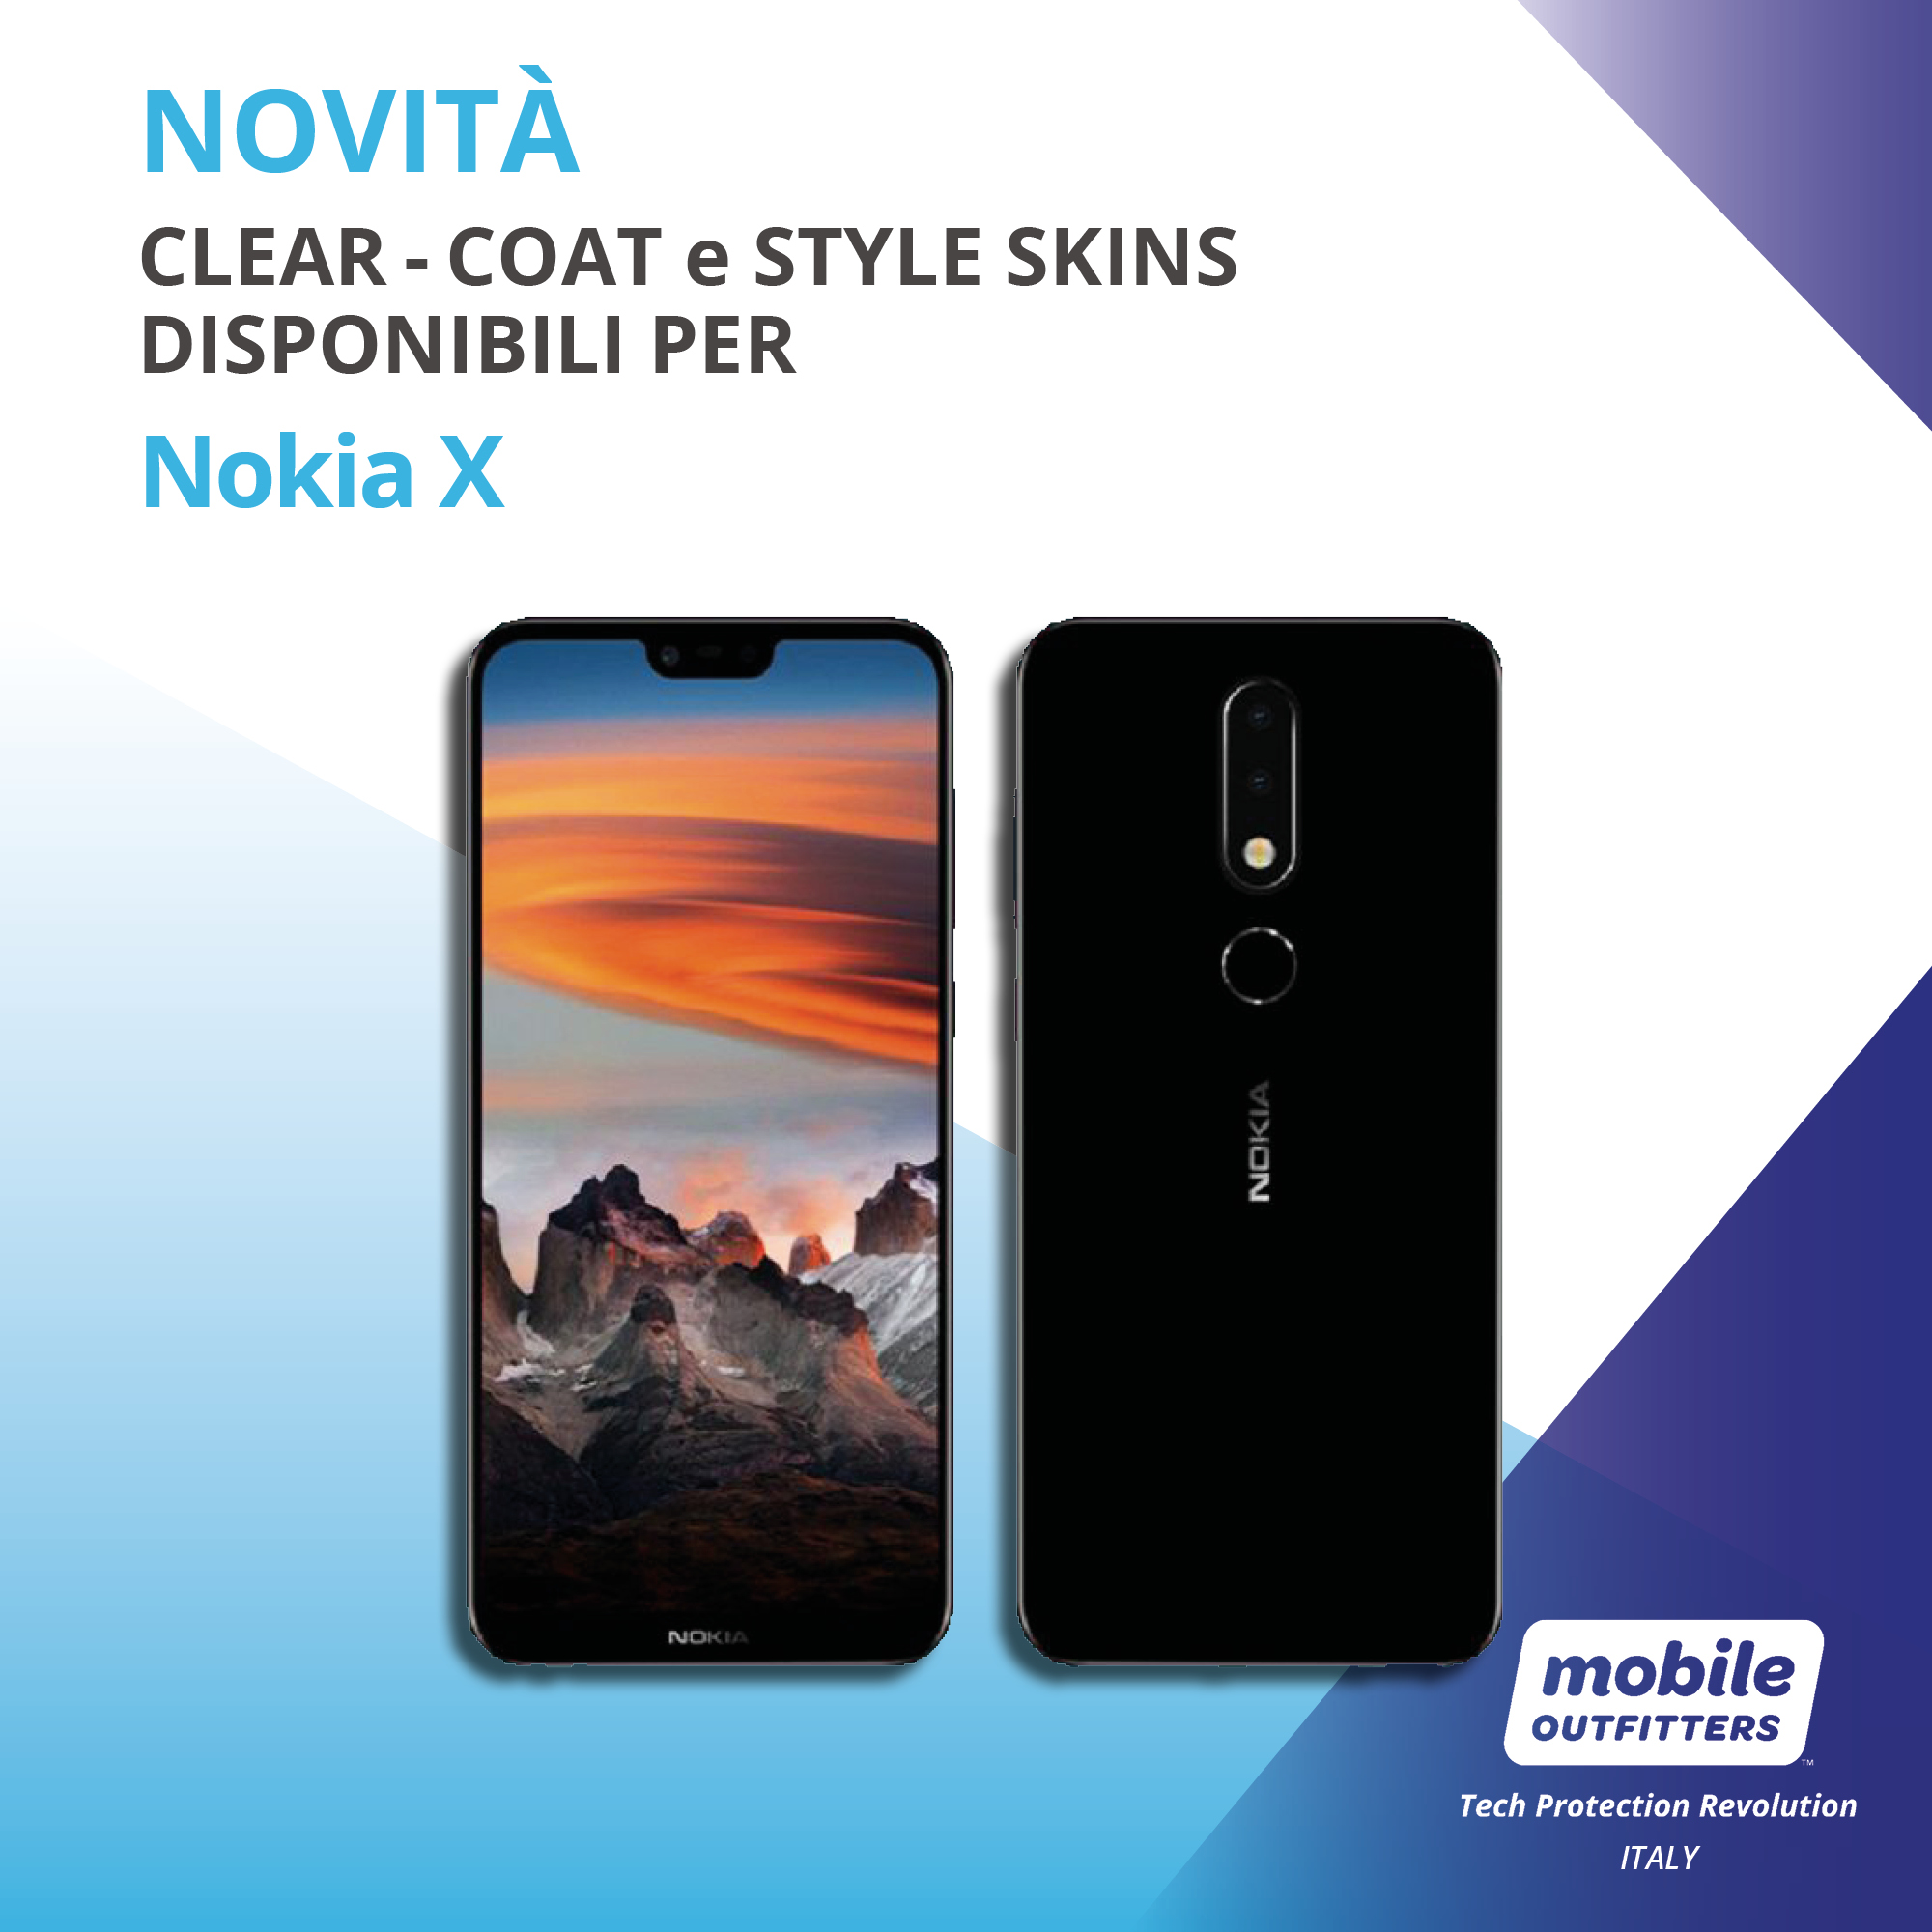 07_06_MOBILE OUTFITTERS_NOKIA X